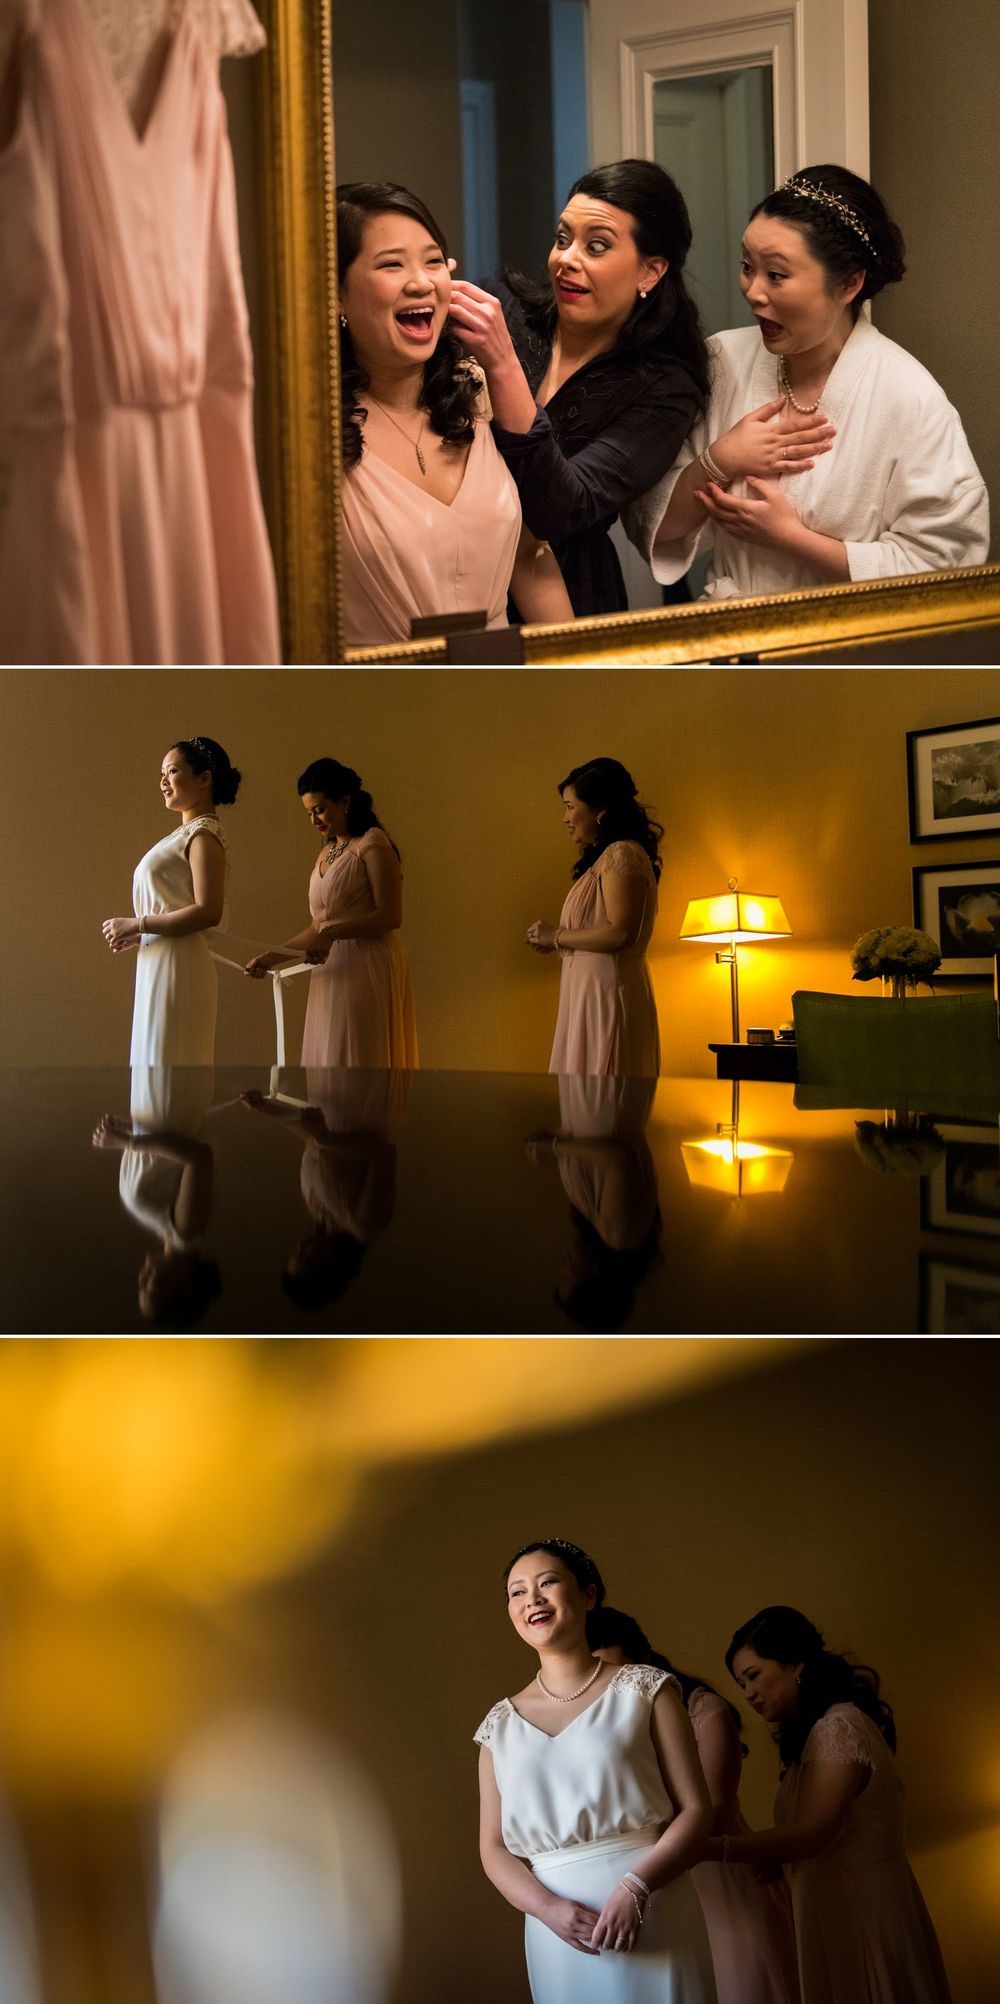 The bride with her bridesmaids getting ready at the Chateau Laurier